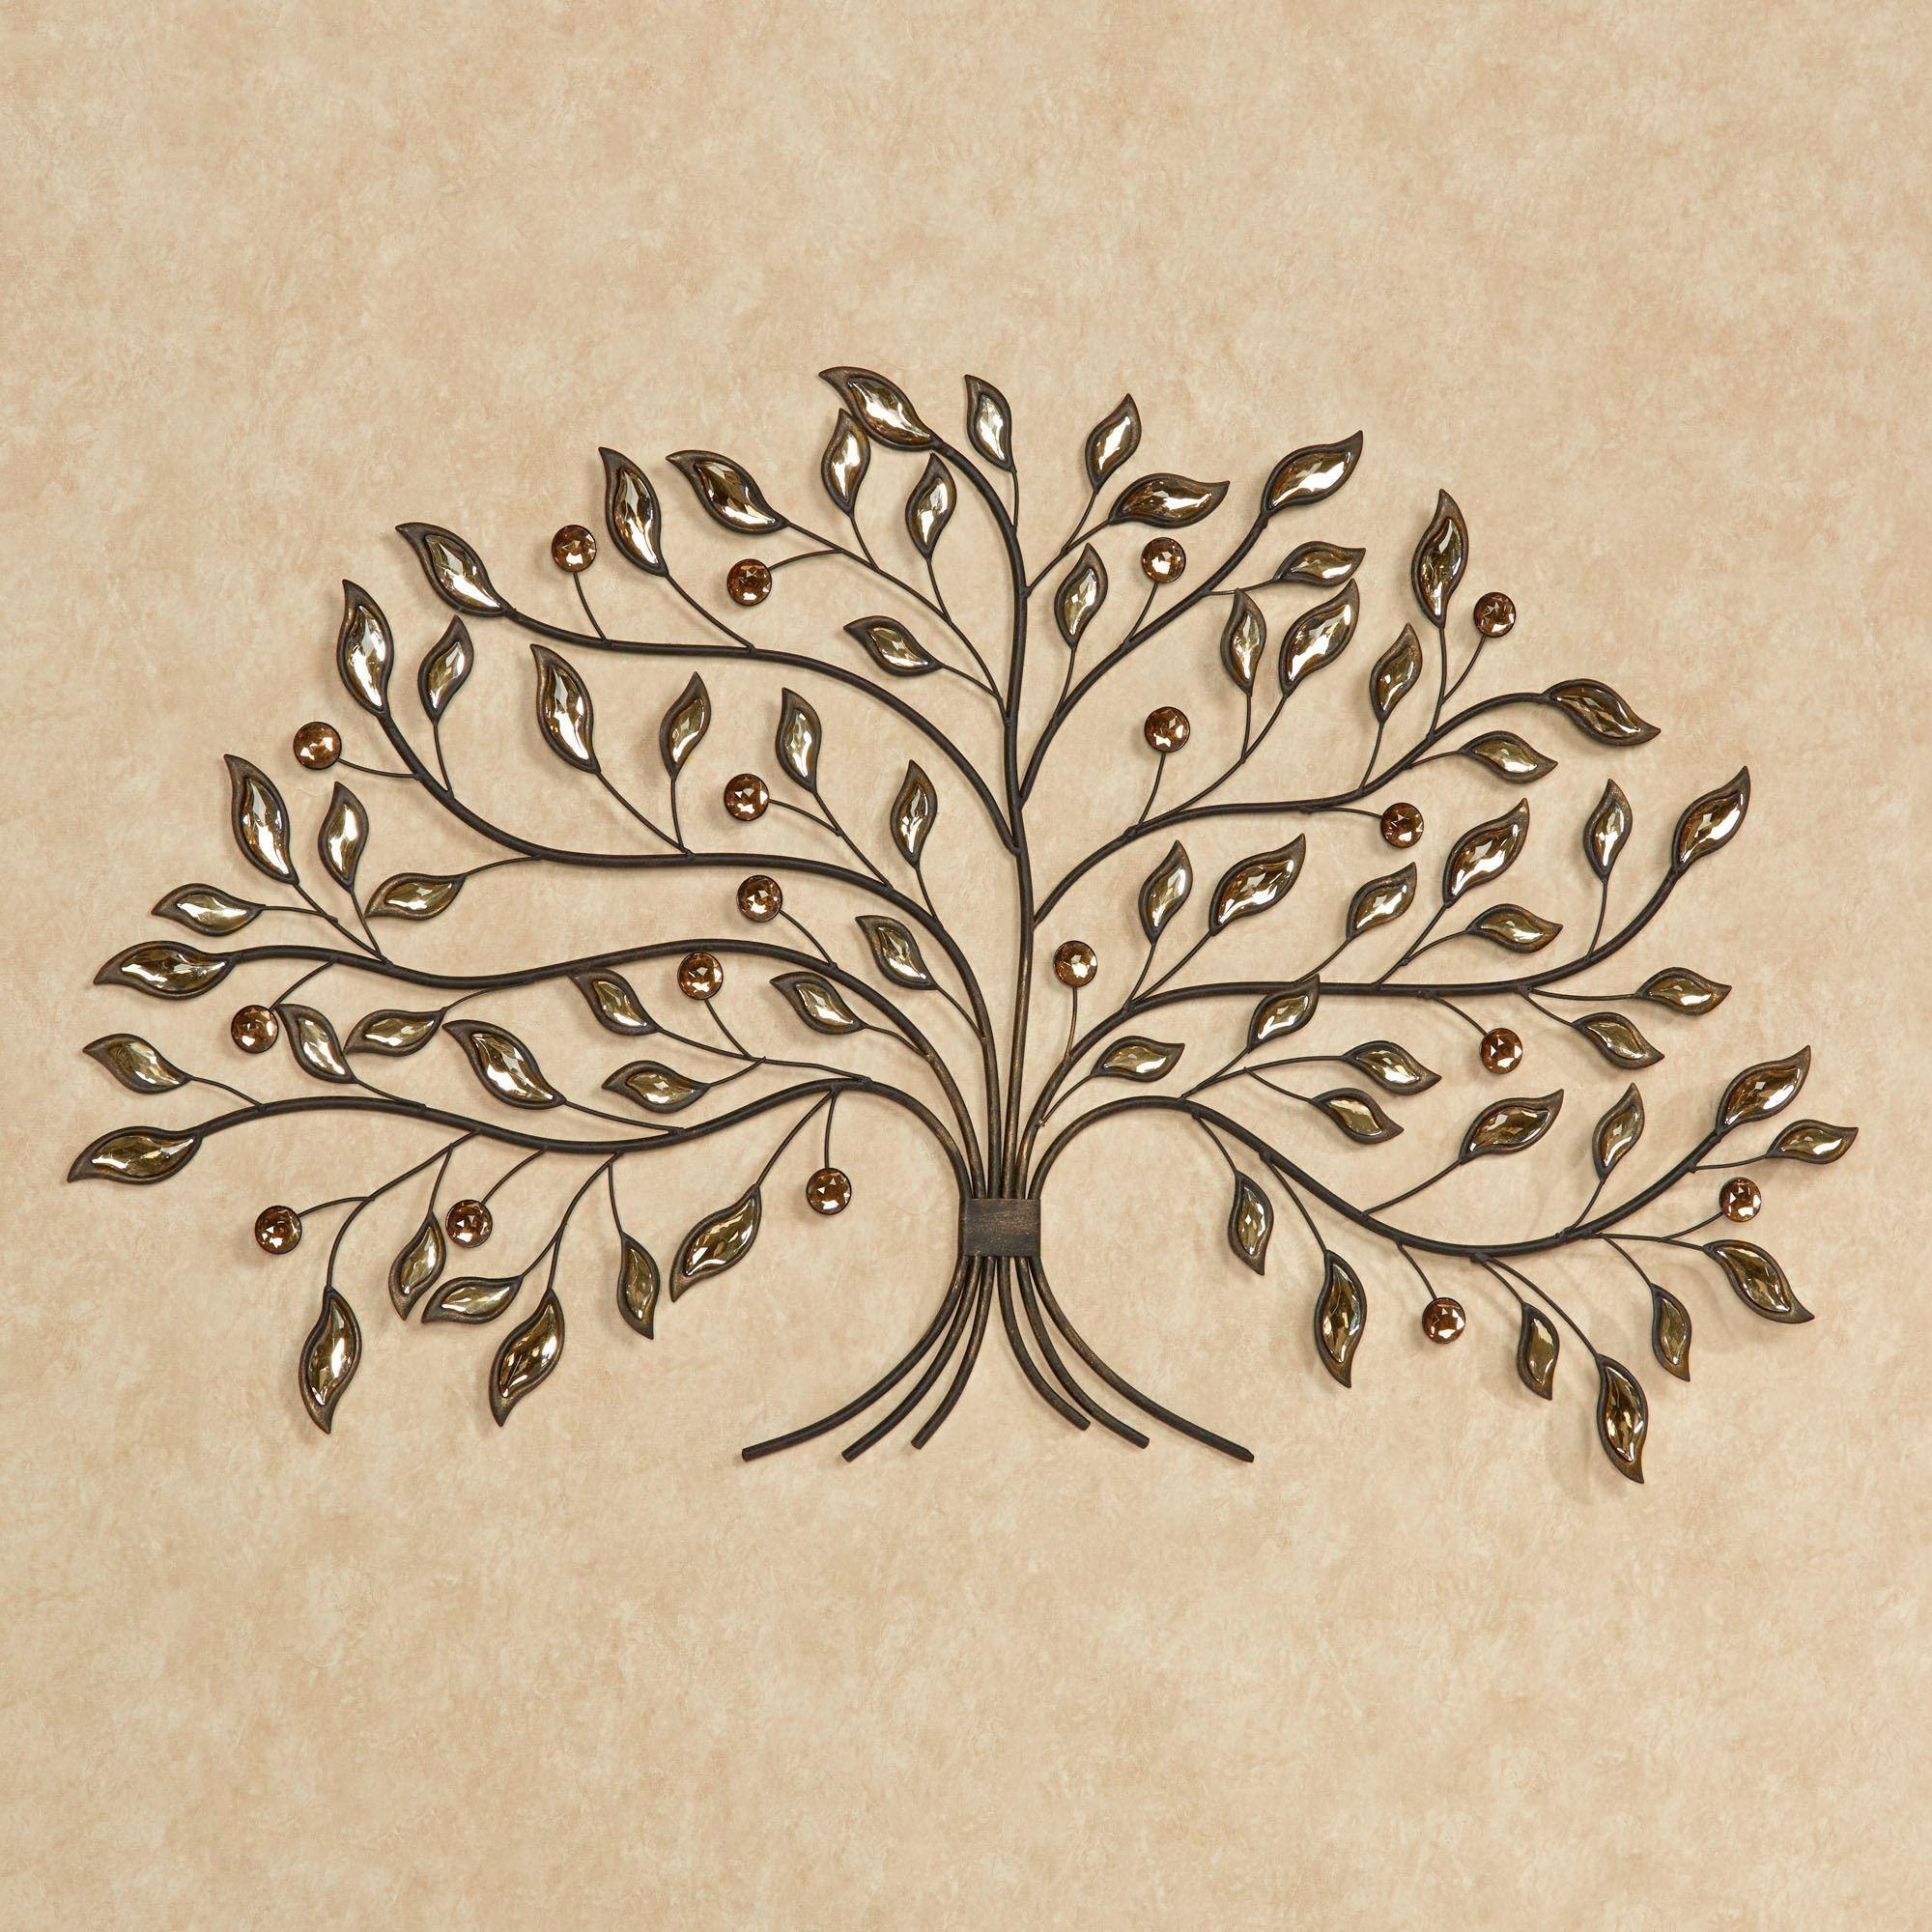 Alexandra Vining Gem Tree Metal Wall Art Intended For Metal Tree Wall Art Sculpture (View 14 of 20)